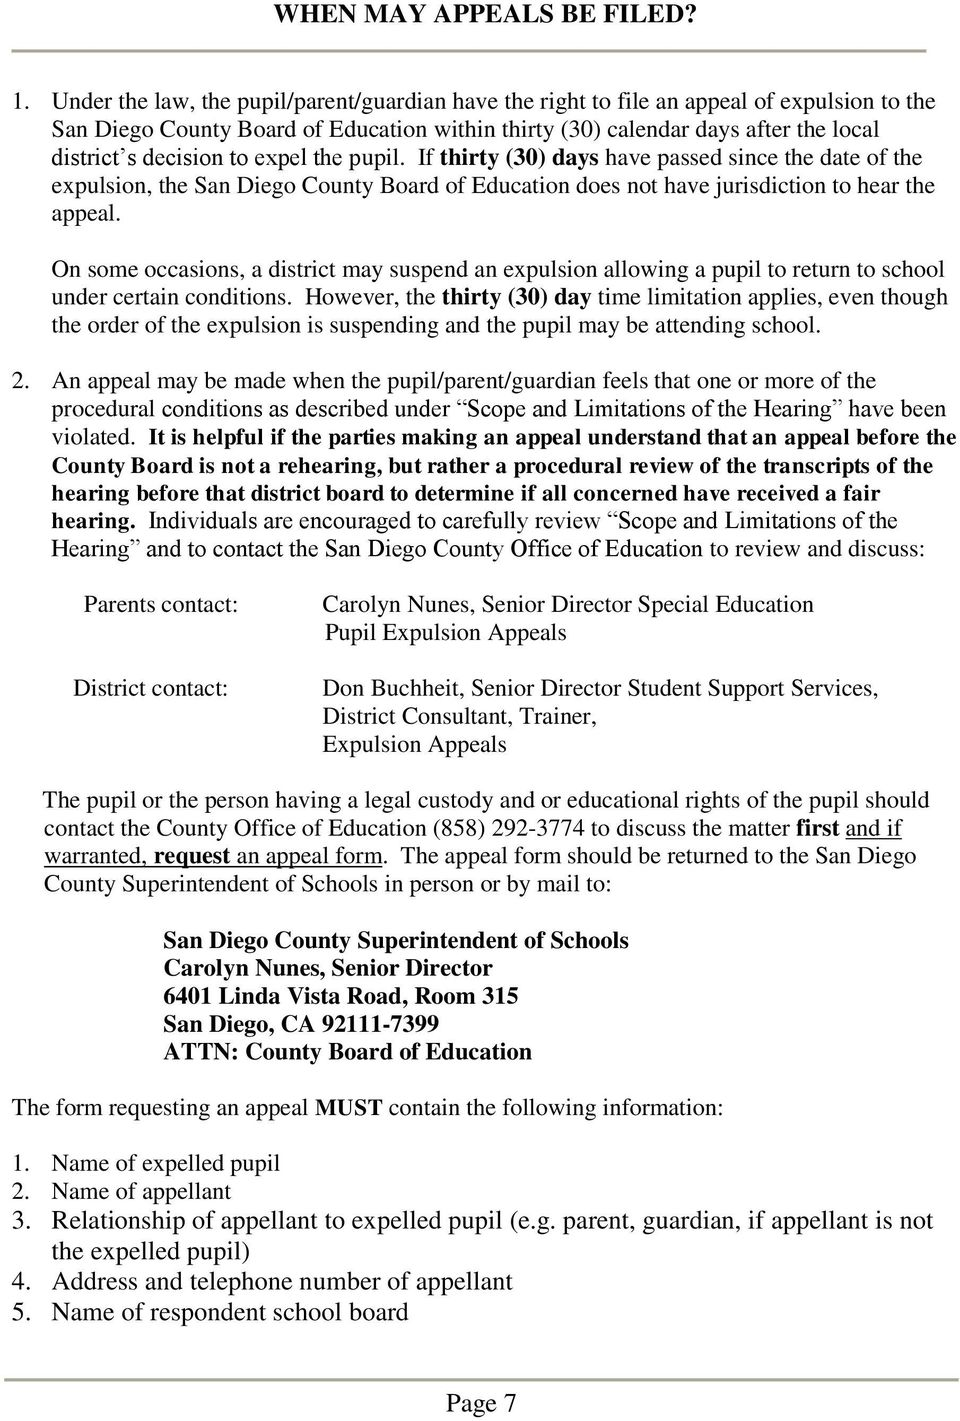 to expel the pupil. If thirty (30) days have passed since the date of the expulsion, the San Diego County Board of Education does not have jurisdiction to hear the appeal.